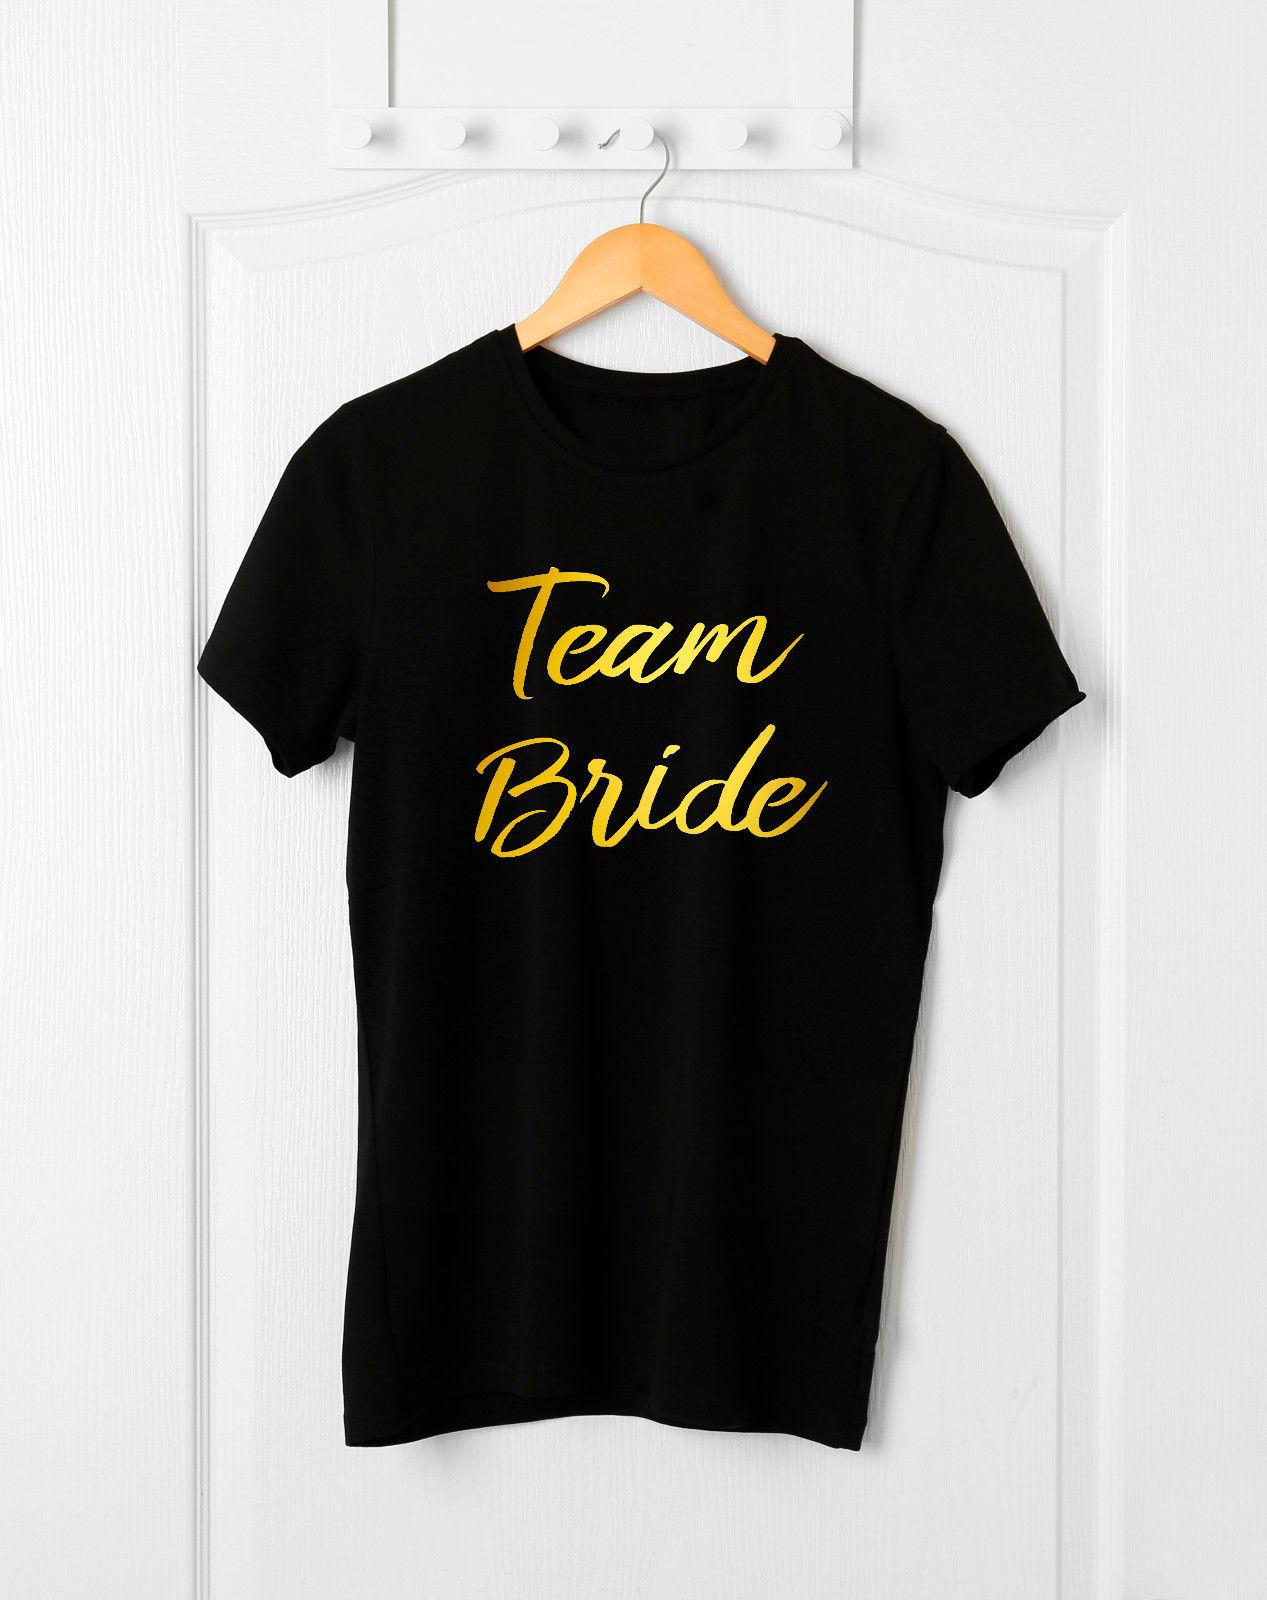 c177ce2828a75 Team Bride T Shirt,Hen Party T Shirt,Engagement Gifts,Wedding Party, Bridesmaid Funny Unisex Interesting T Shirt Designs T Shirts Cool Designs  From ...